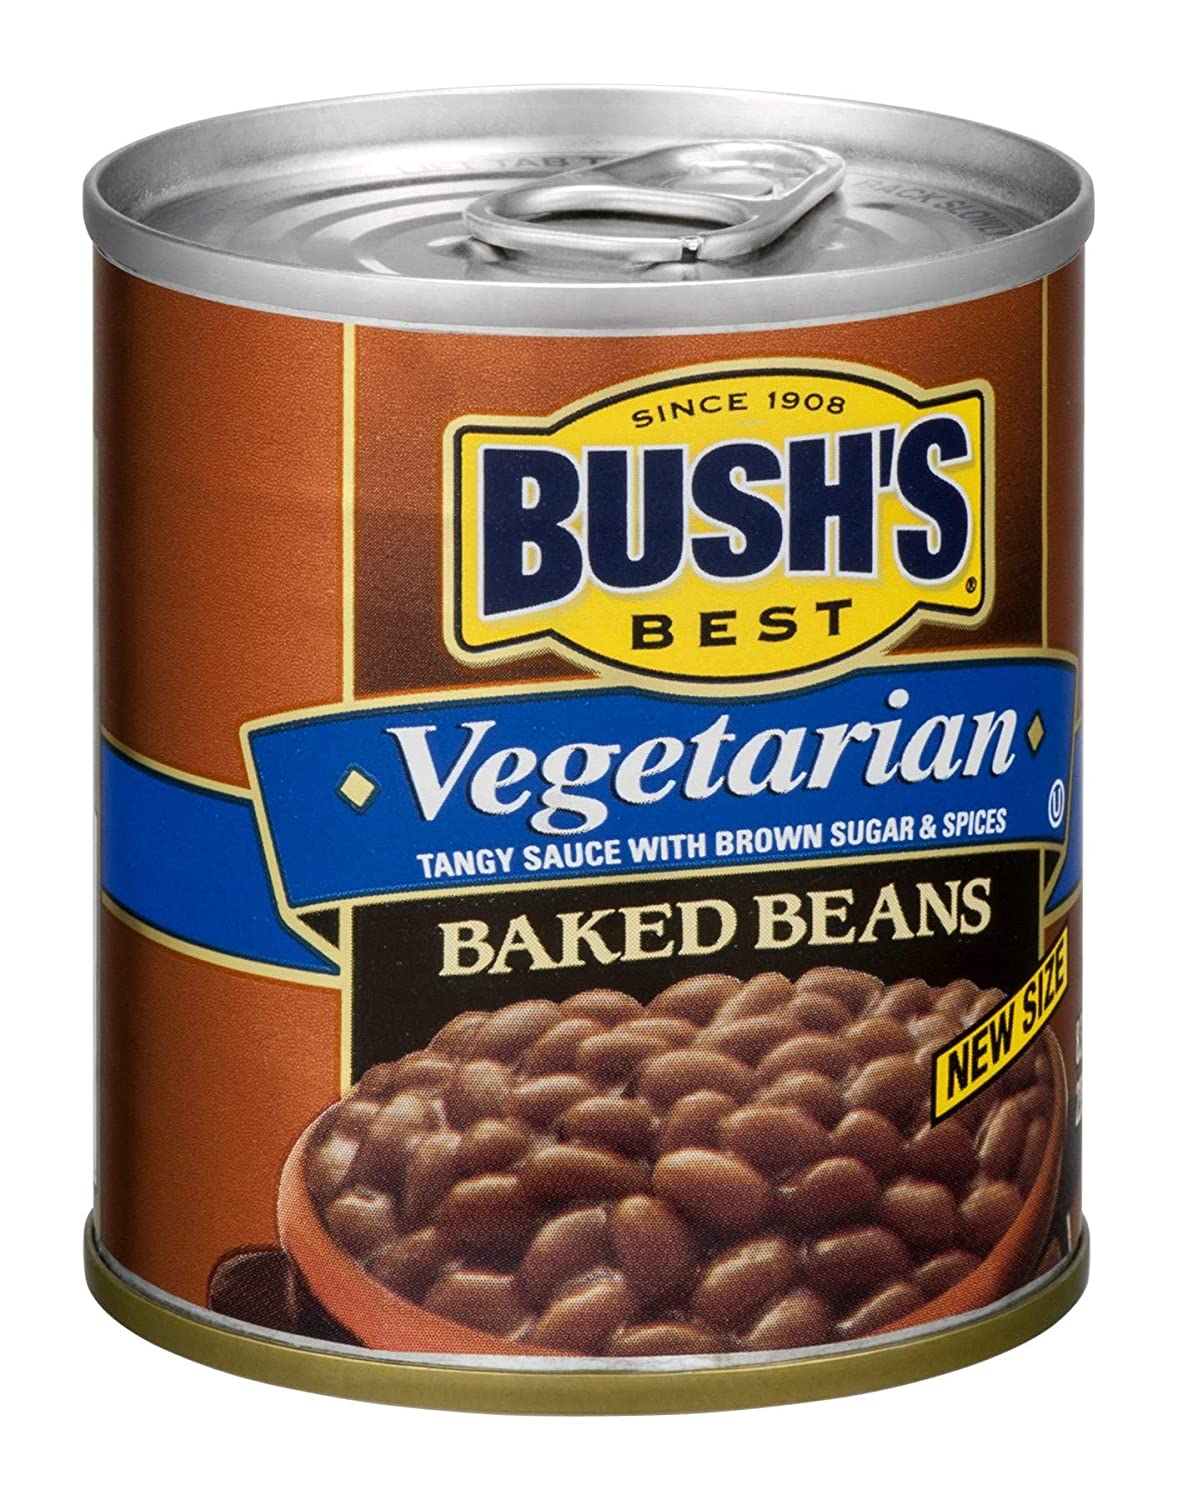 BUSH'S BEST Vegetarian Baked Beans, 8.3 Ounce Can (Pack of 12), Canned Beans, Baked Beans Canned, Vegetarian Food, Kosher, Source of Plant Based Protein and Fiber, Low Fat, Gluten Free